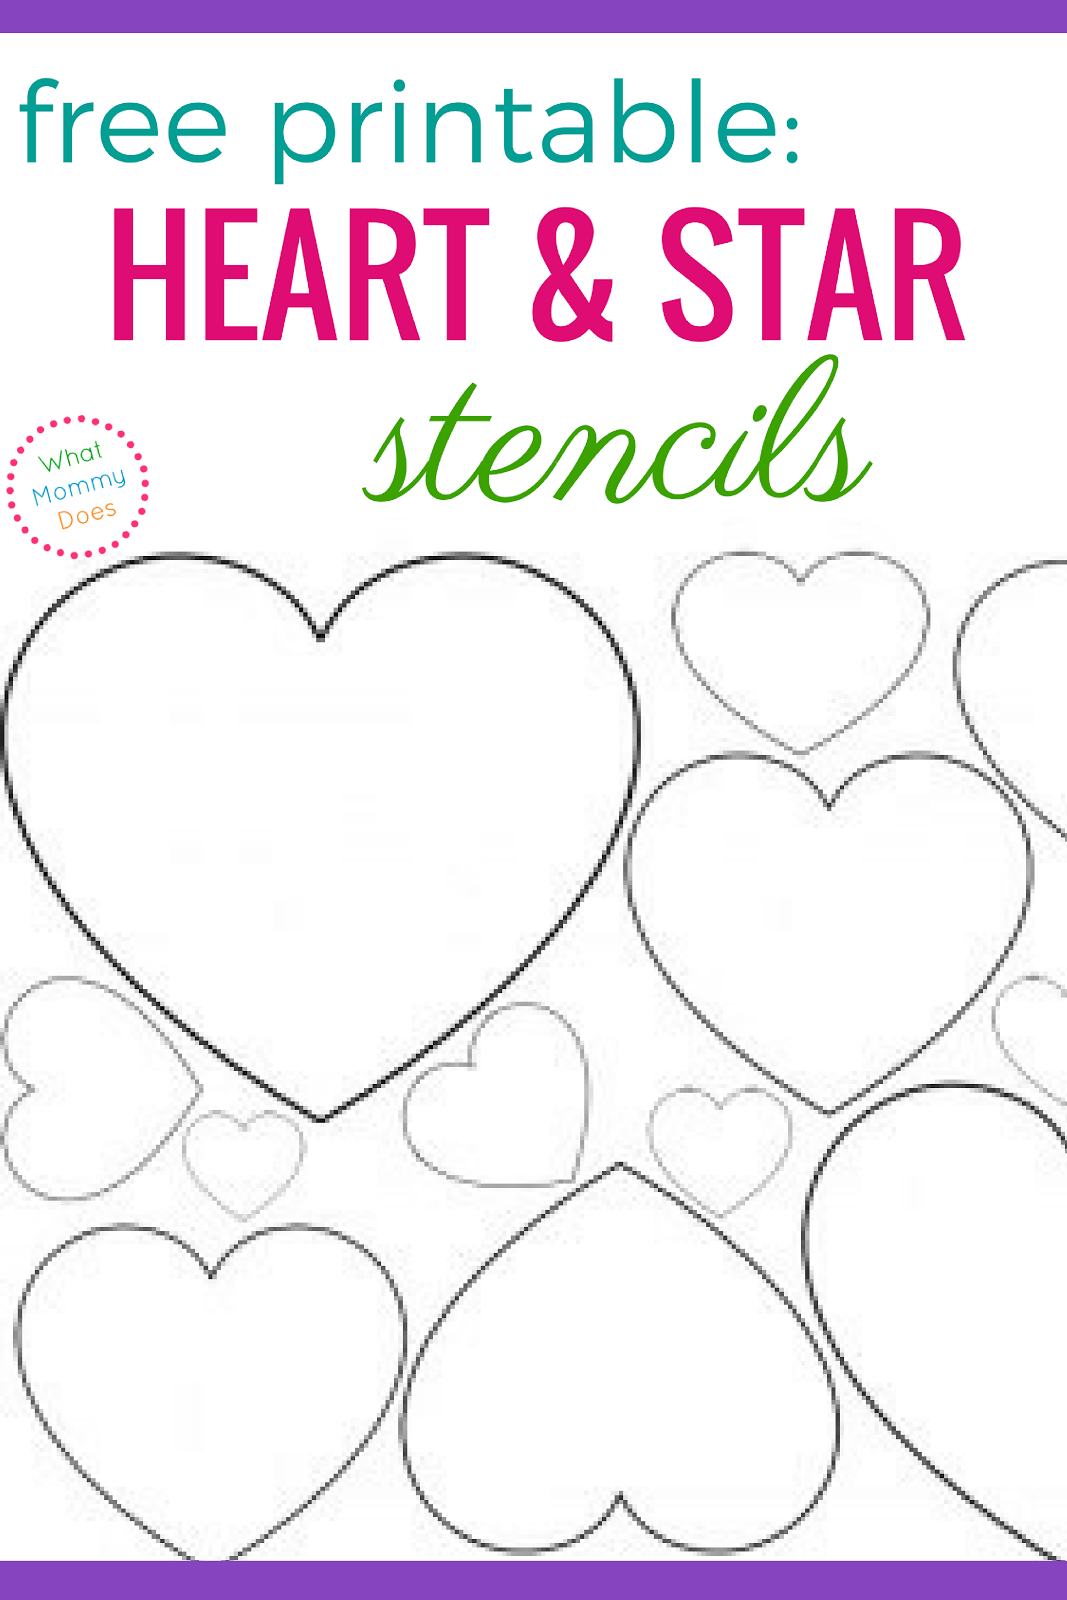 photo regarding Free Printable Heart Template called No cost Printable Center Stencils Star Templates What Mommy Does